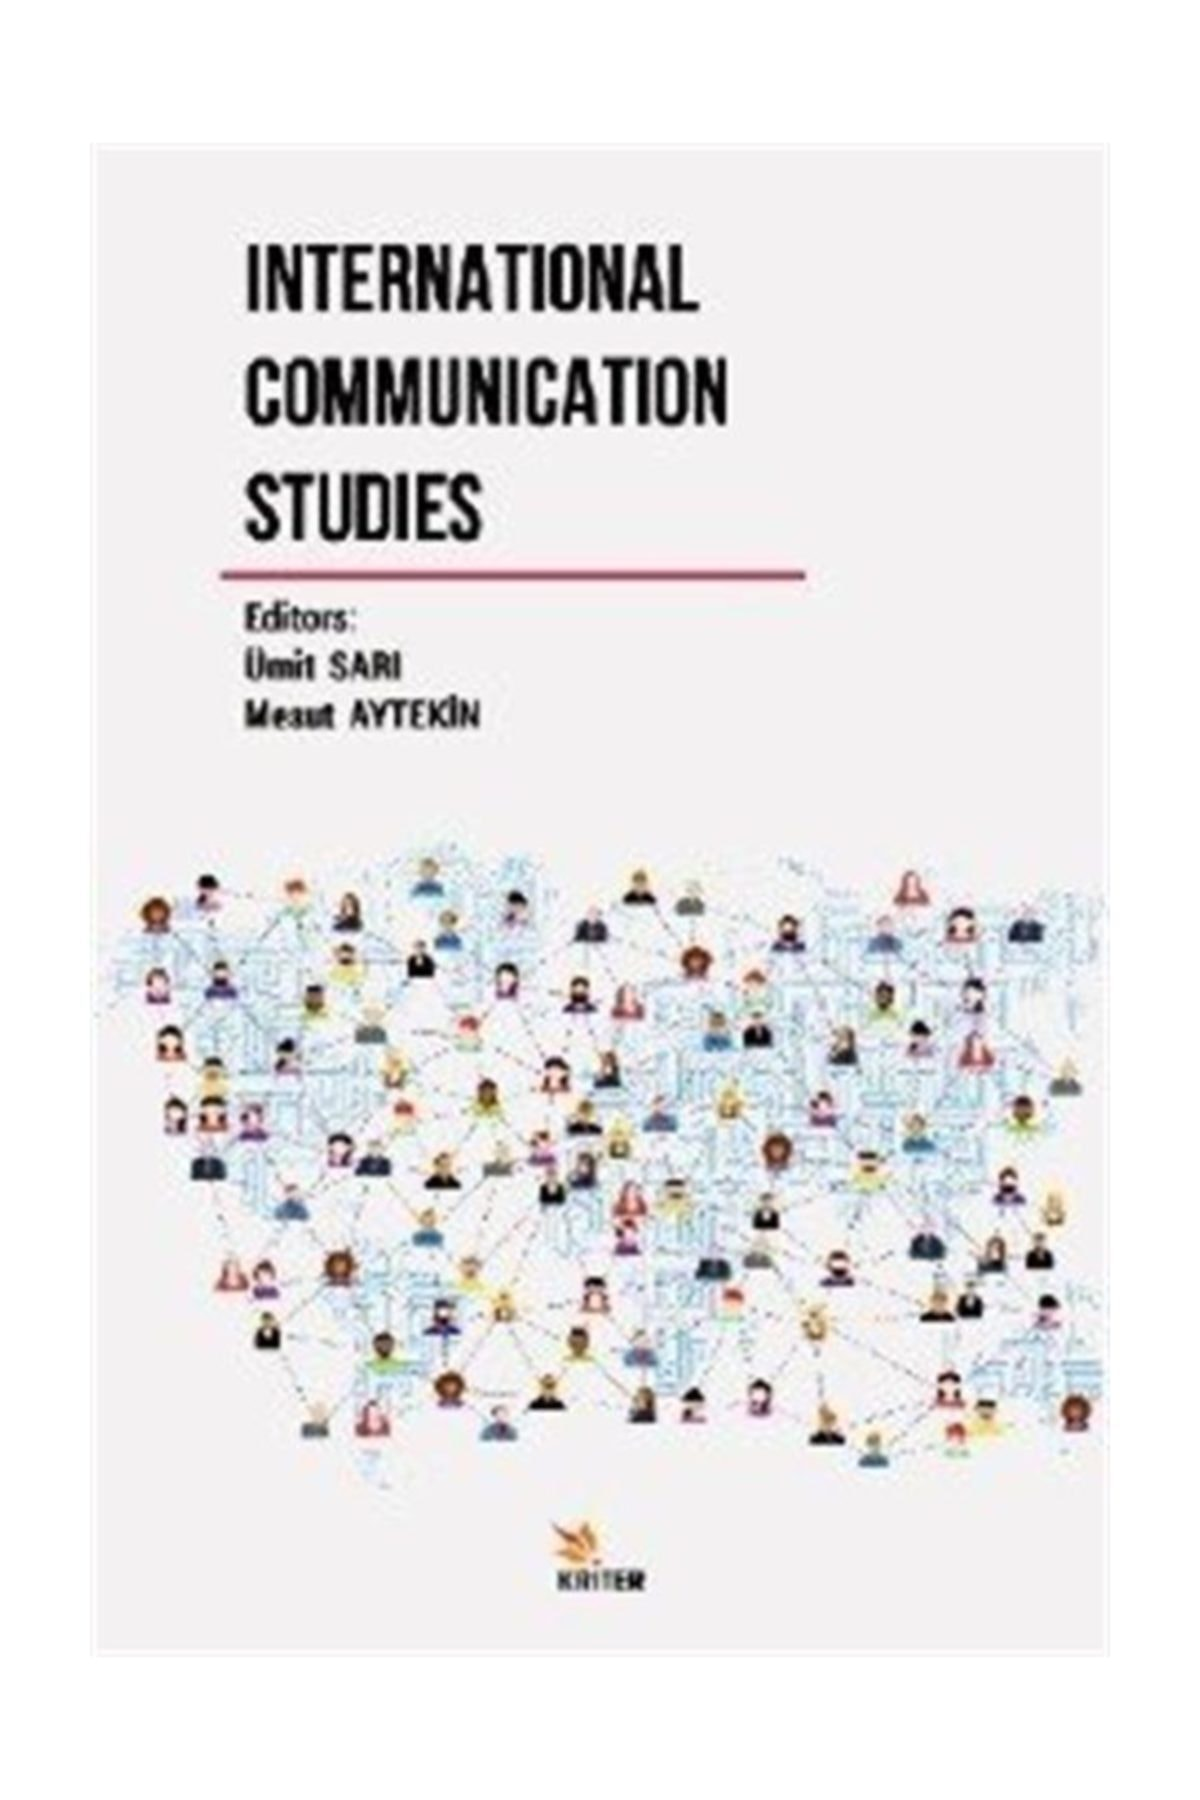 International Communication Studies